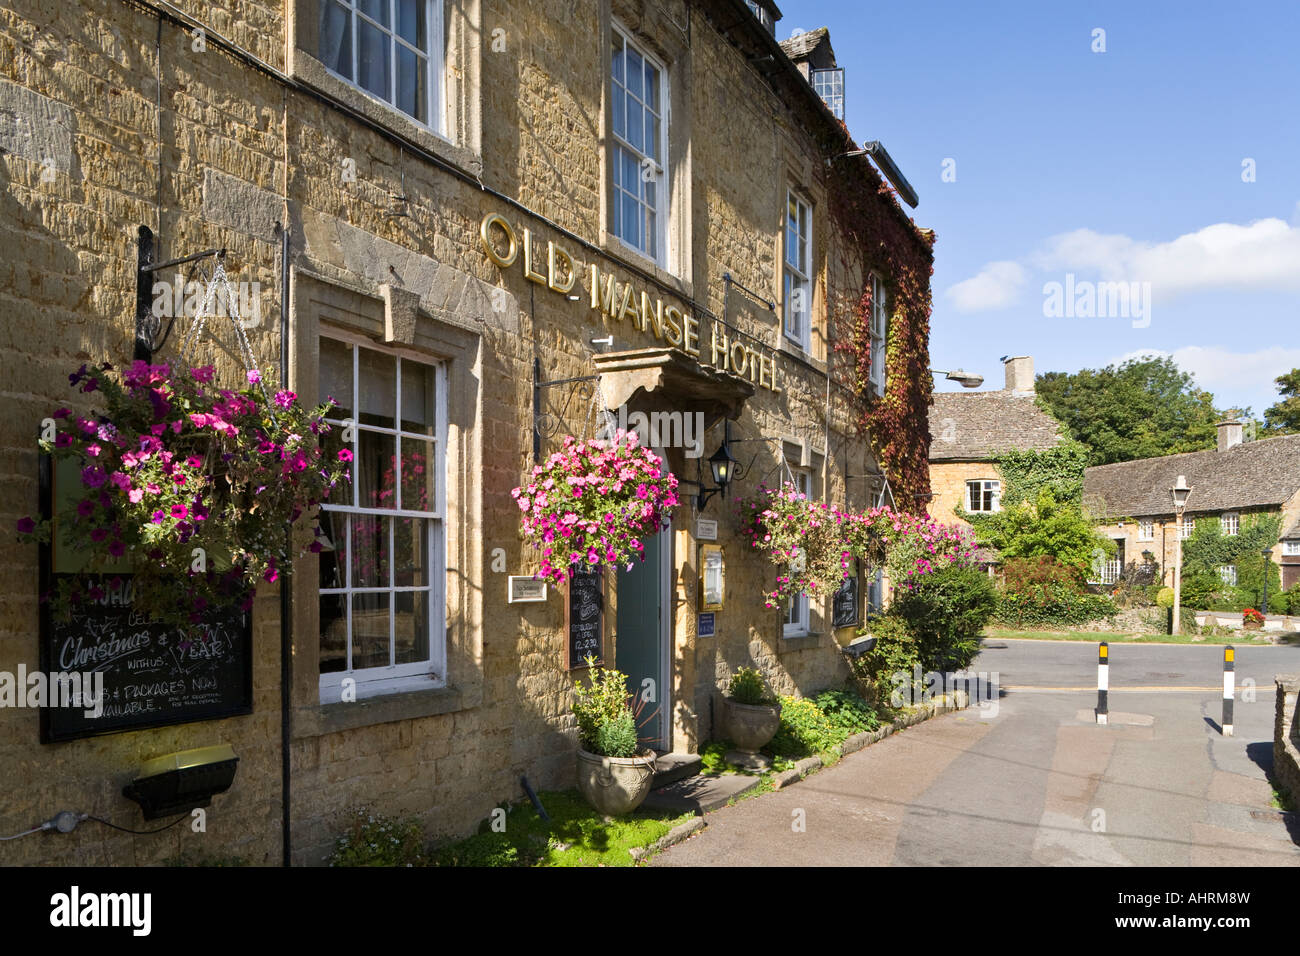 The Old Manse Hotel in the Cotswold village of Bourton on the Water, Gloucestershire - Stock Image